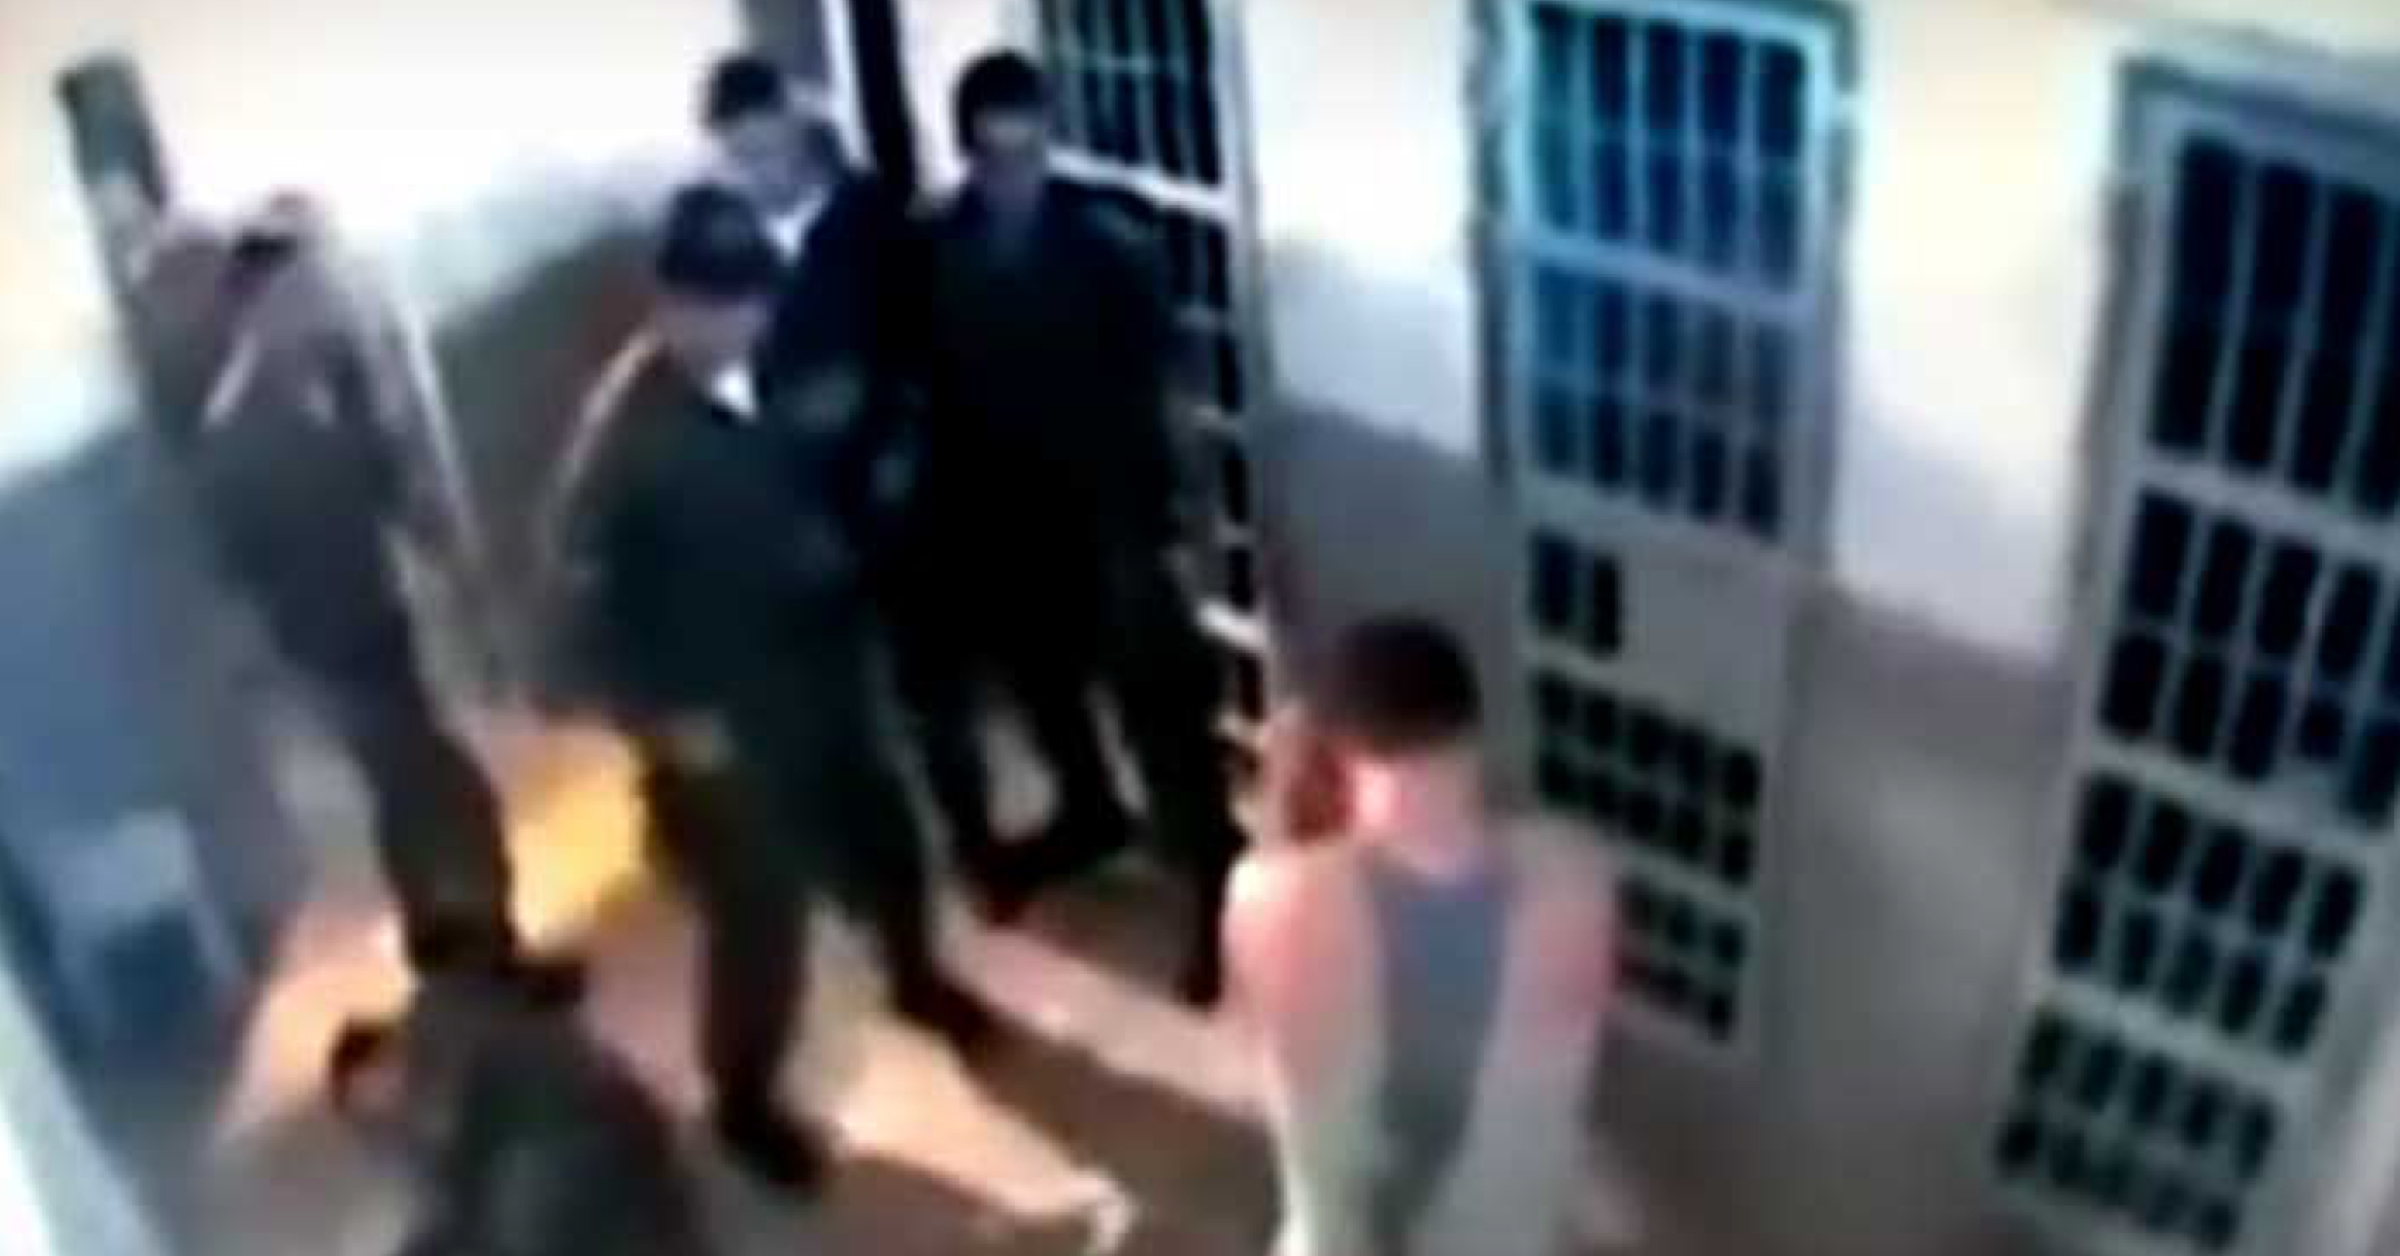 WATCH: Professional Boxer Knocks Out Several Prison Guards In Russian Prison